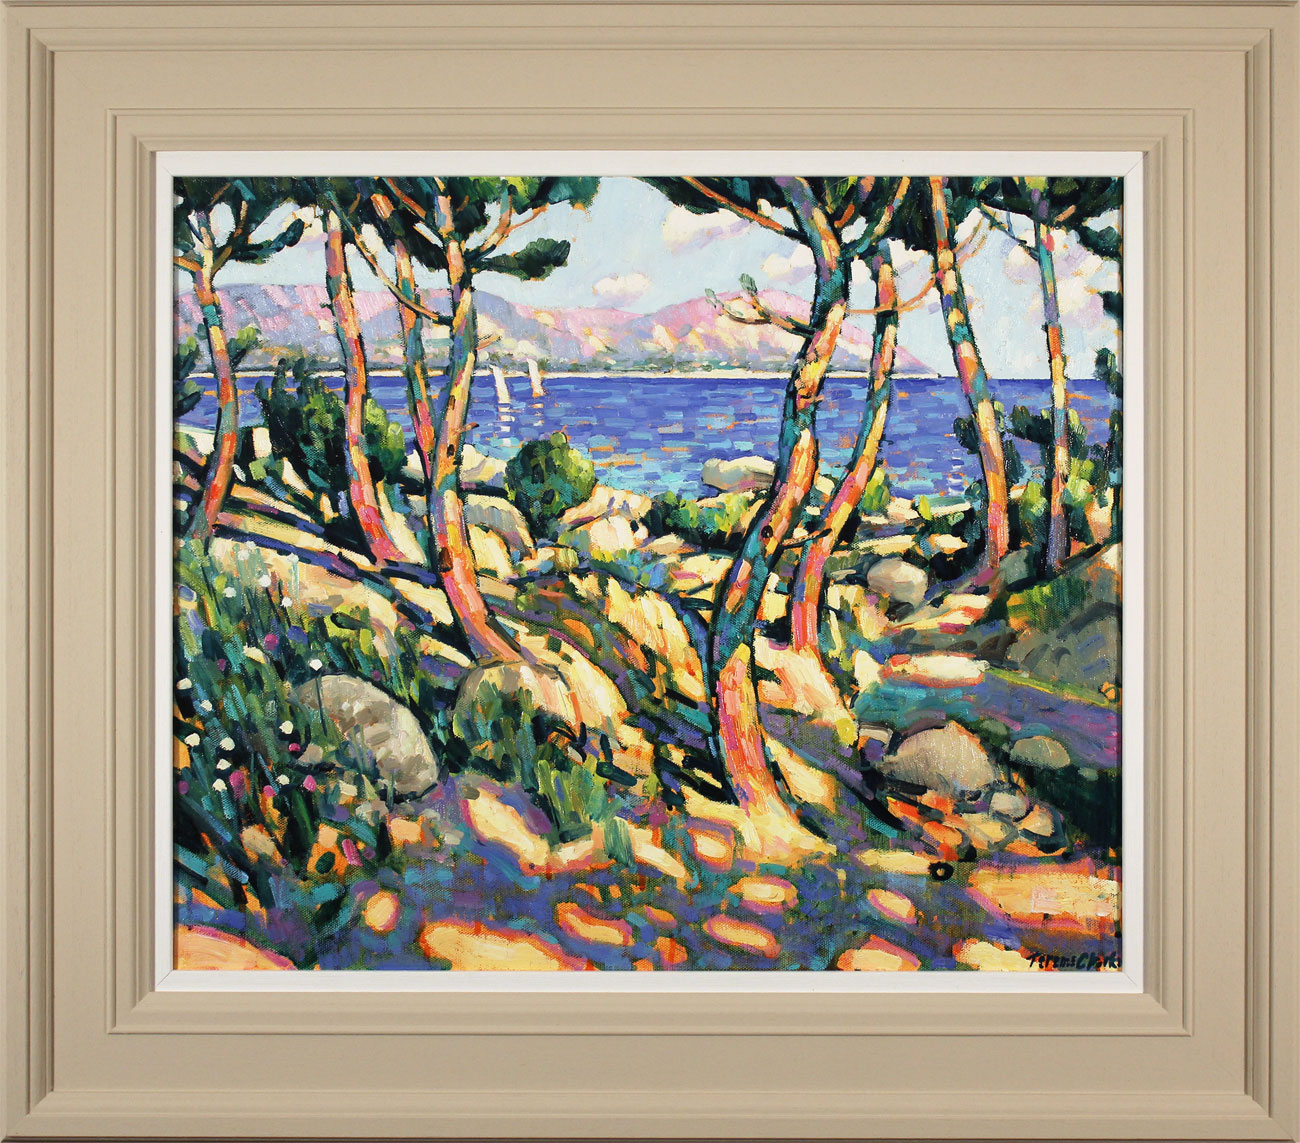 Terence Clarke, Original oil painting on canvas, Rocks and Pines, Cap Ferrat, click to enlarge